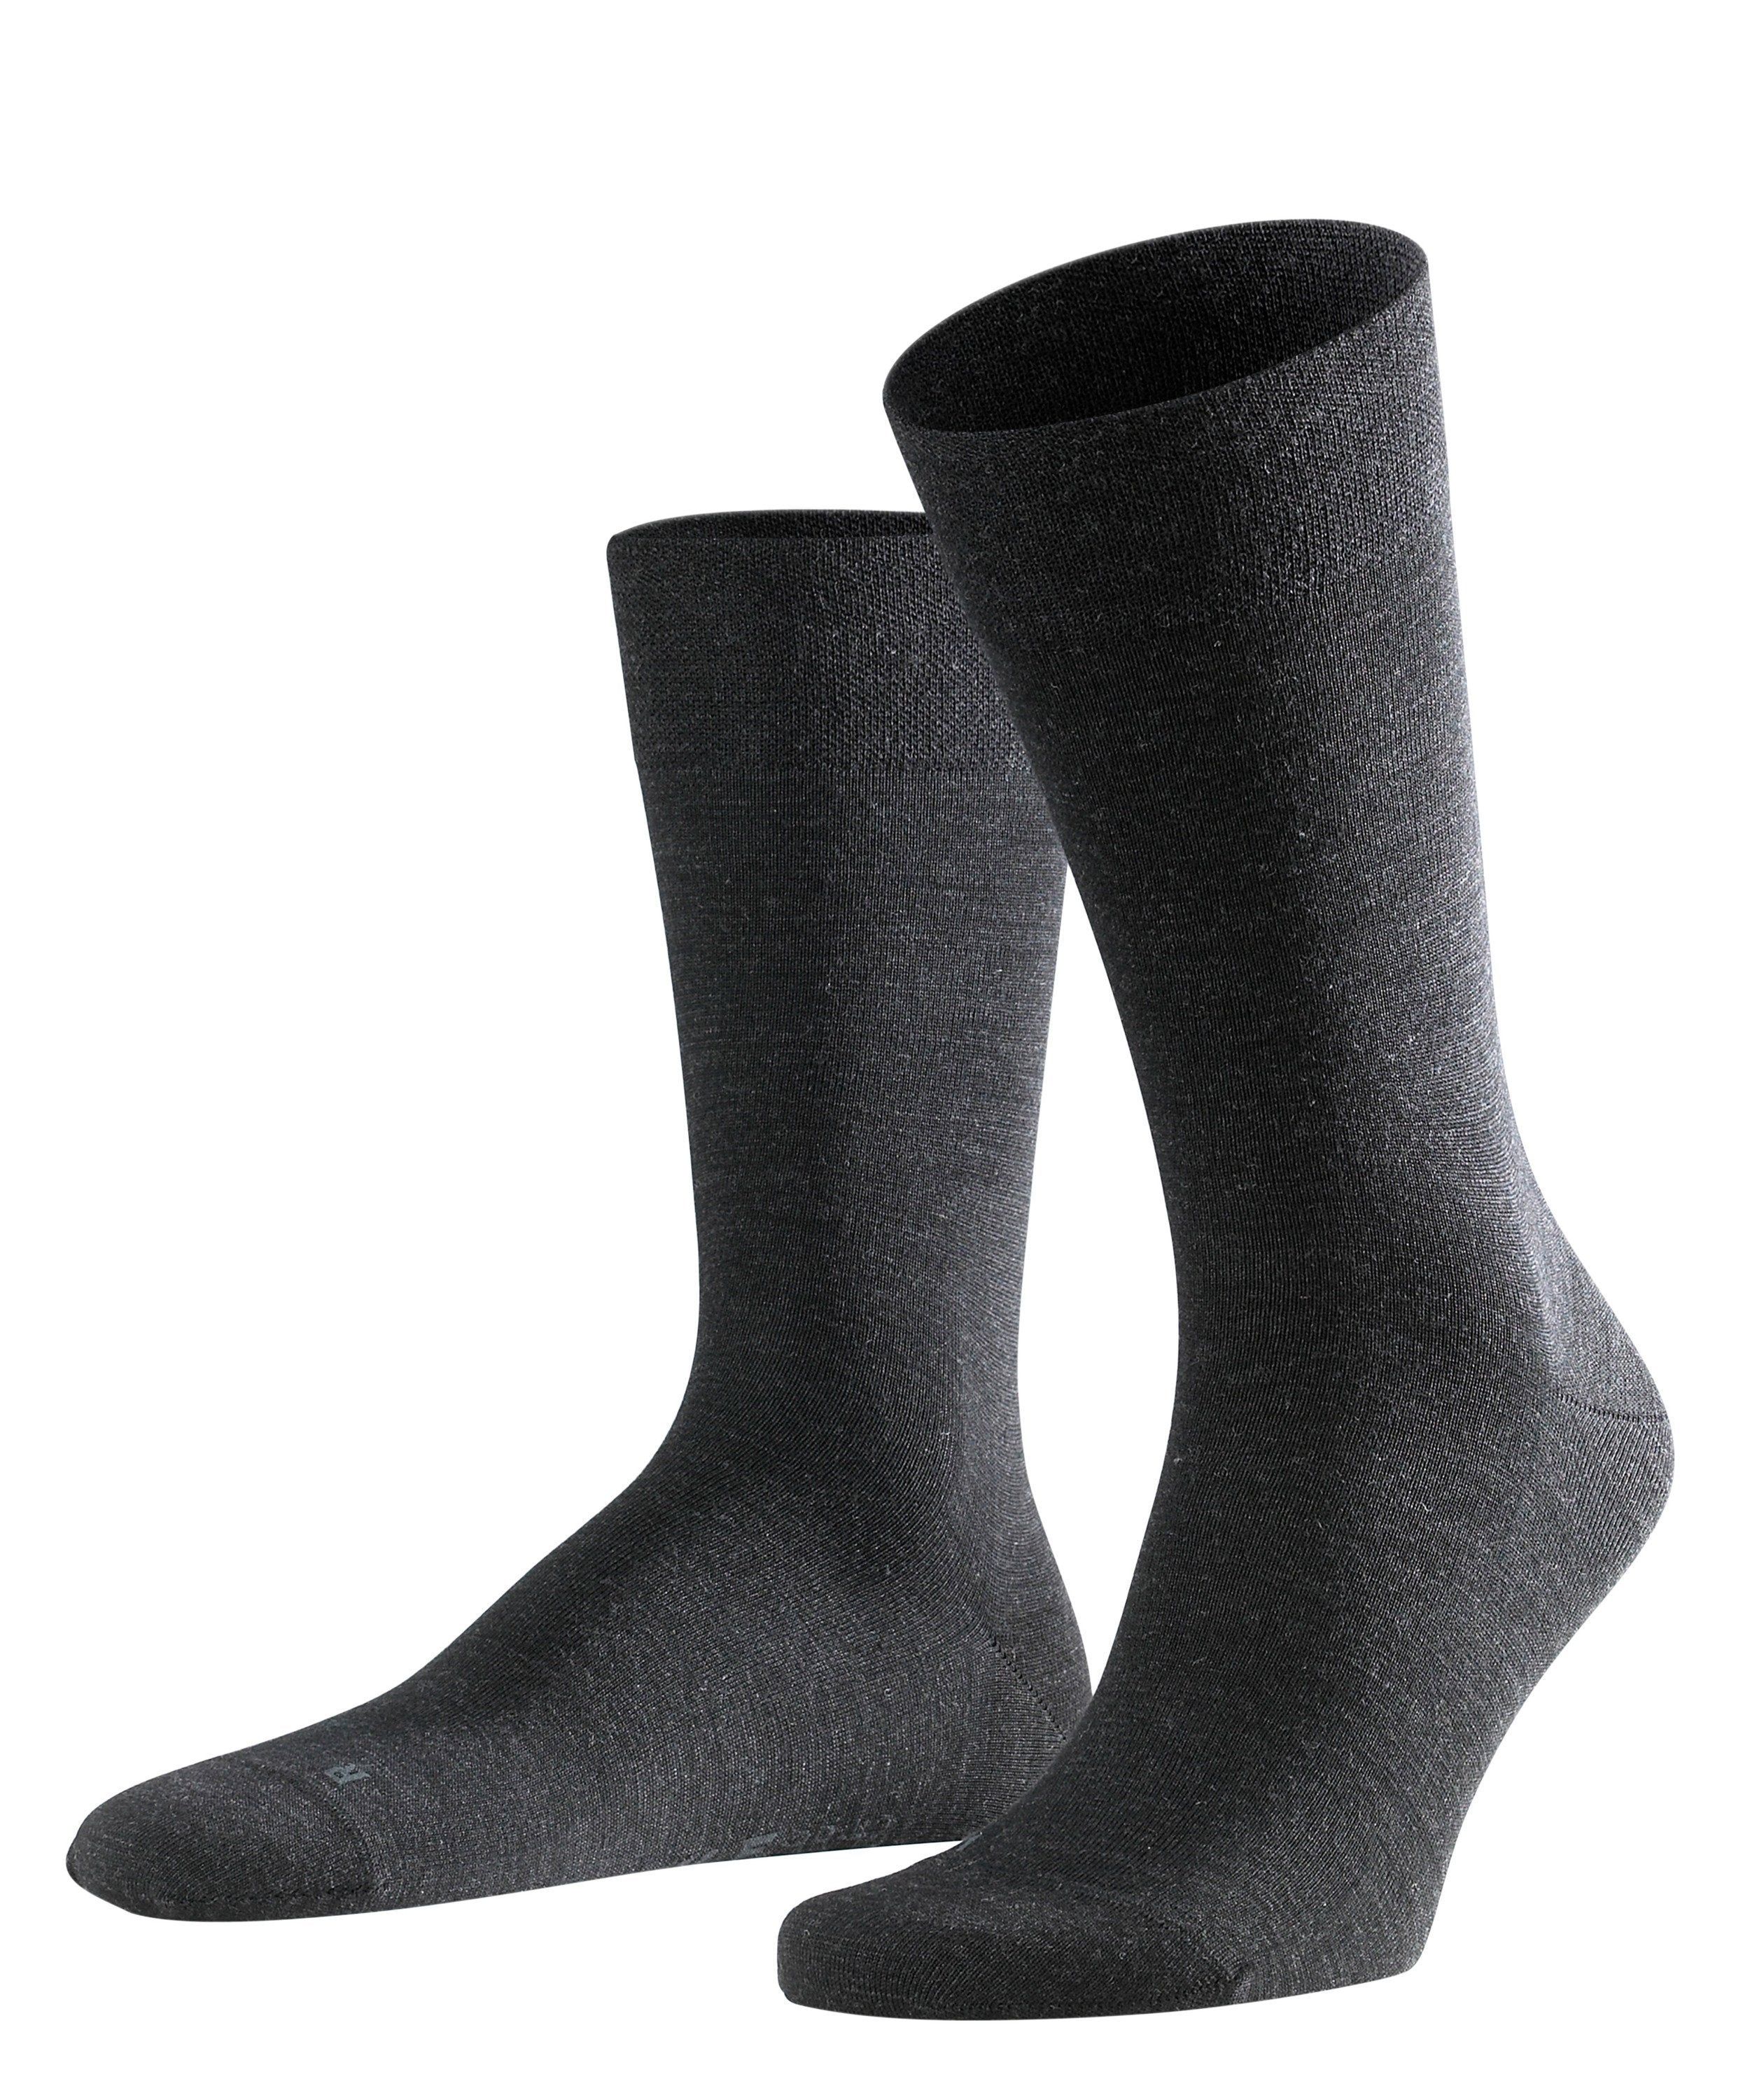 ID8564-Falke Sensitive Berlin Plain Charcoal Sock